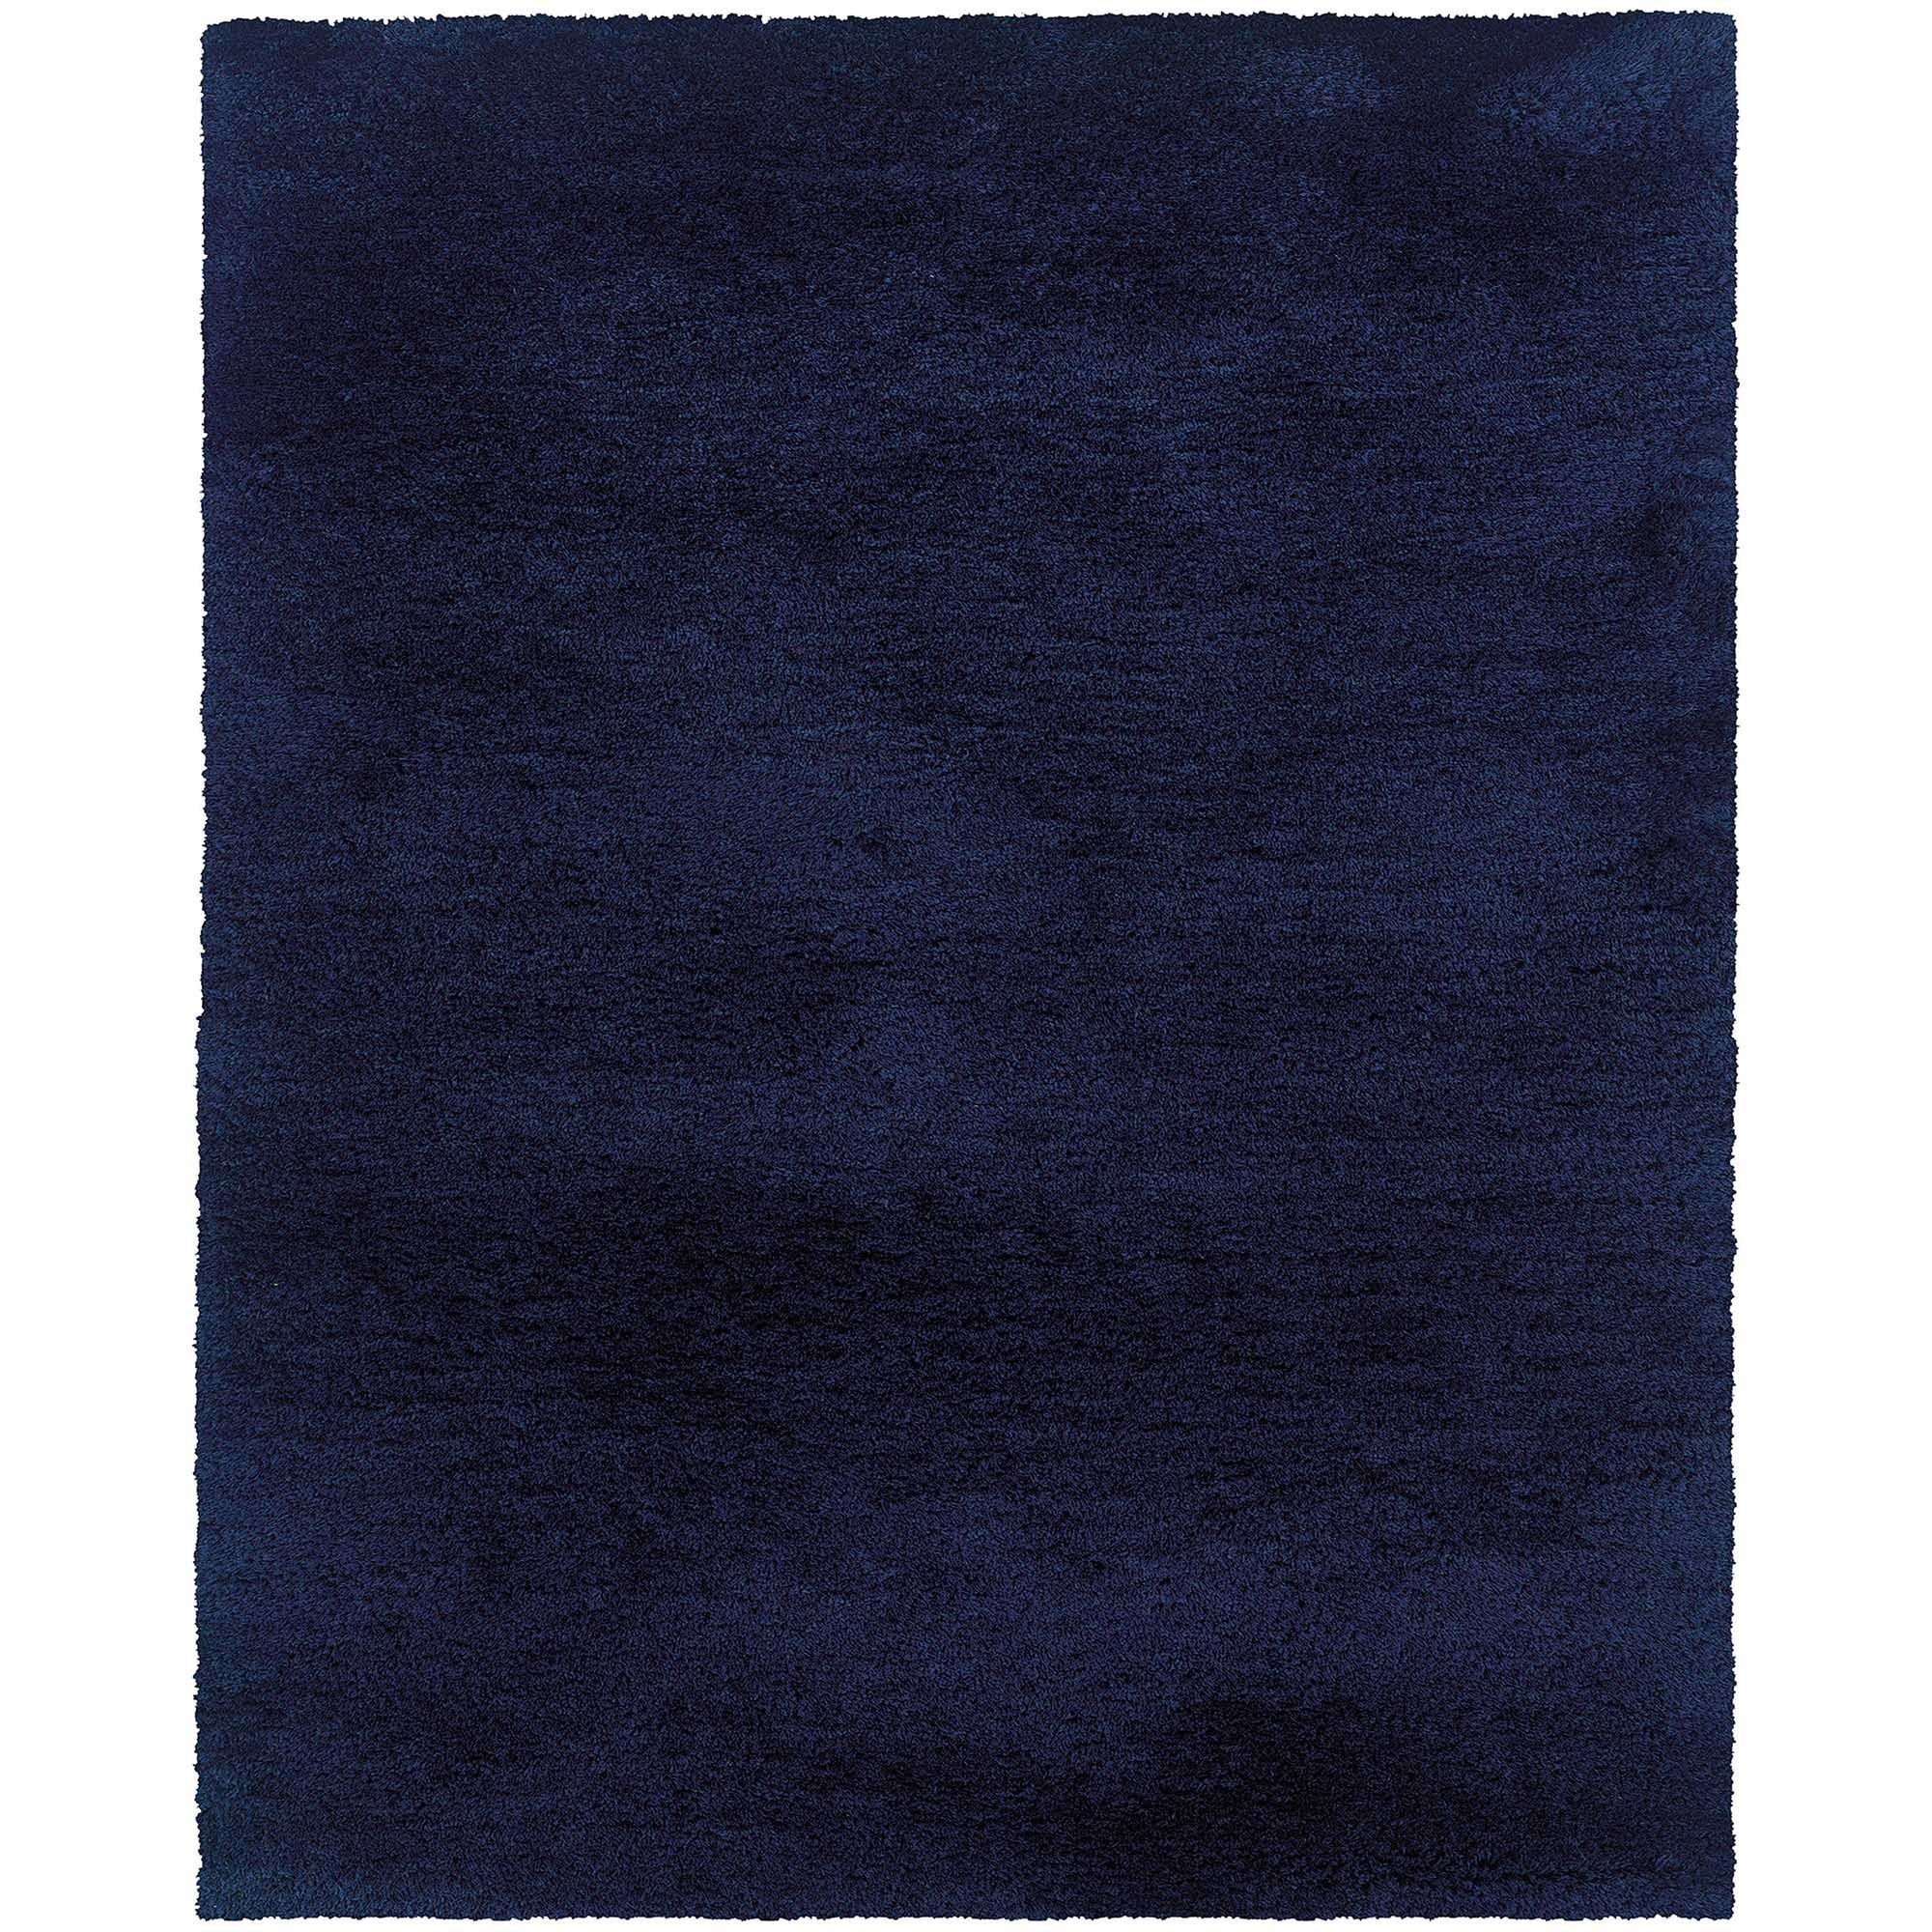 Indoor Blue Shag Area Rug